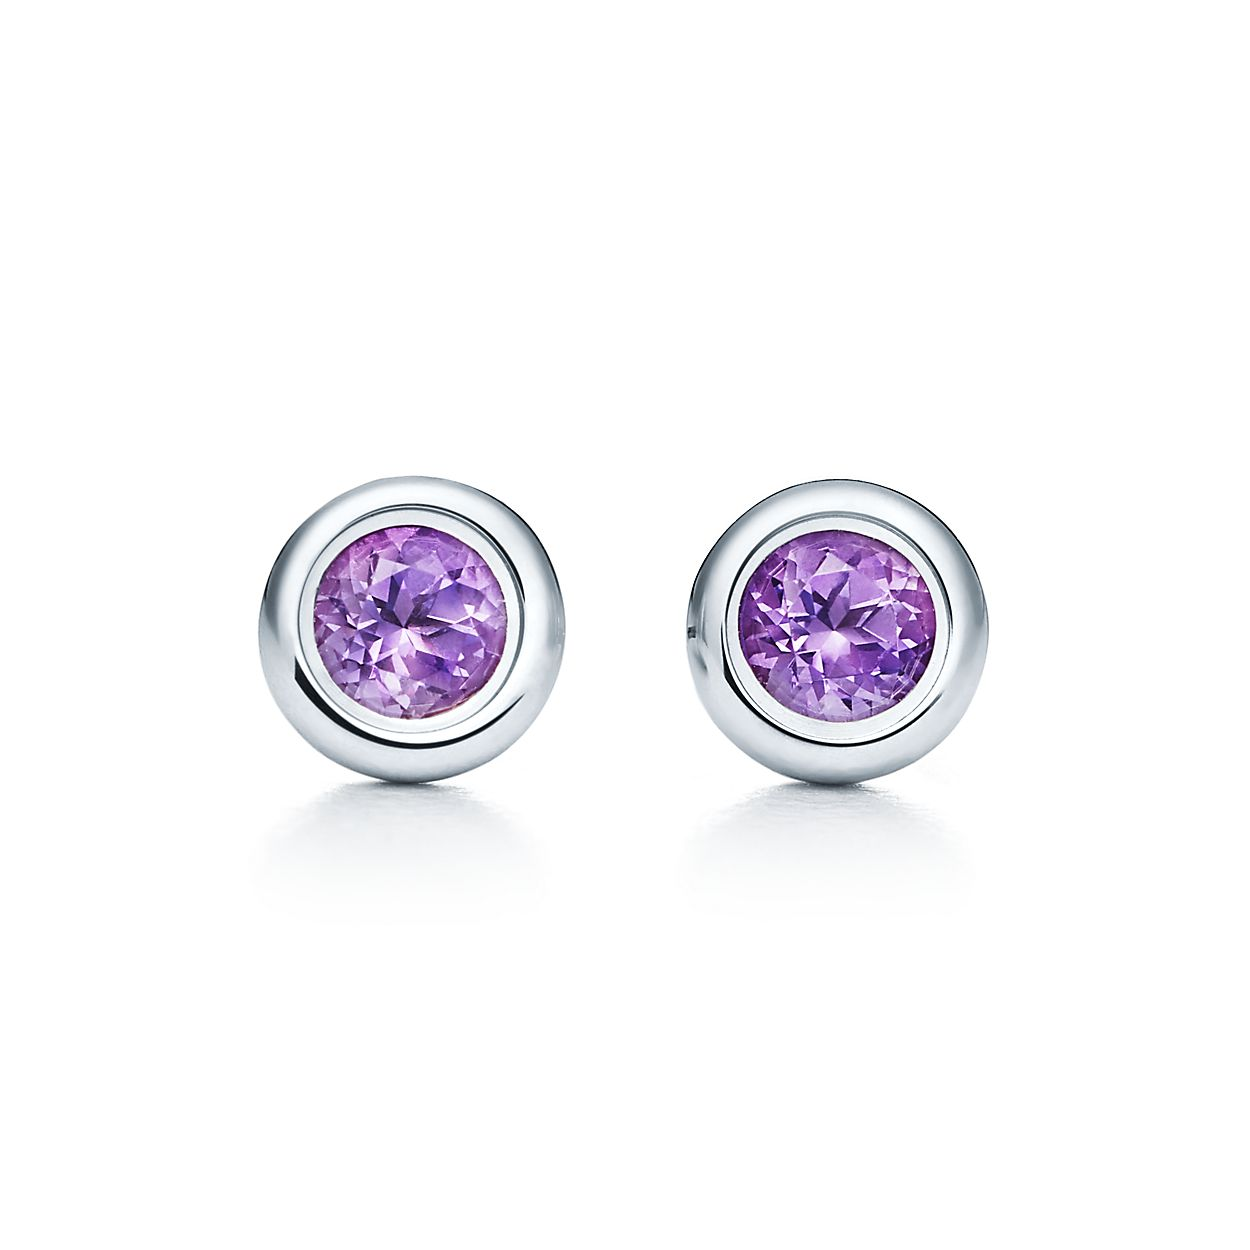 Elsa Peretti Color By The Yard Earrings In Sterling Silver With Amethysts Tiffany Co